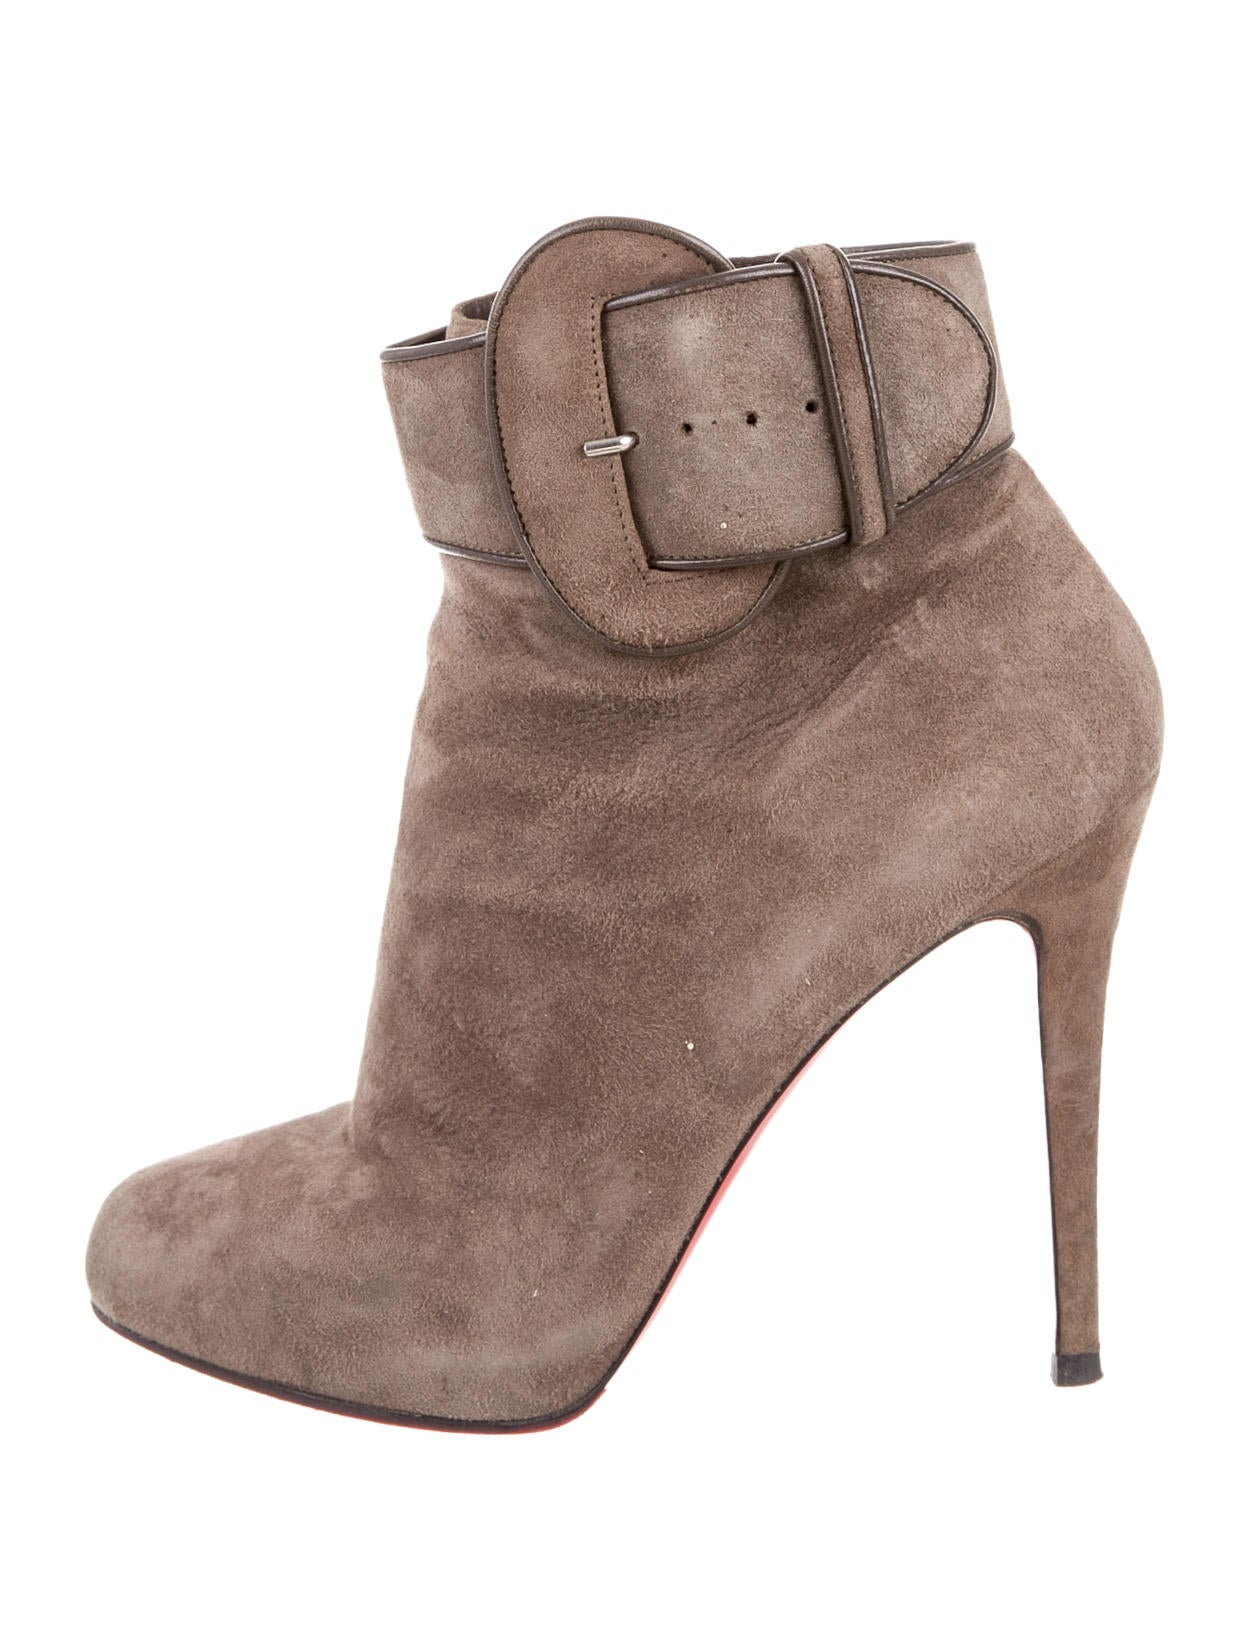 detailed look e89e3 a74bd Artesur » christian louboutin ankle boots Taupe suede buckle ...